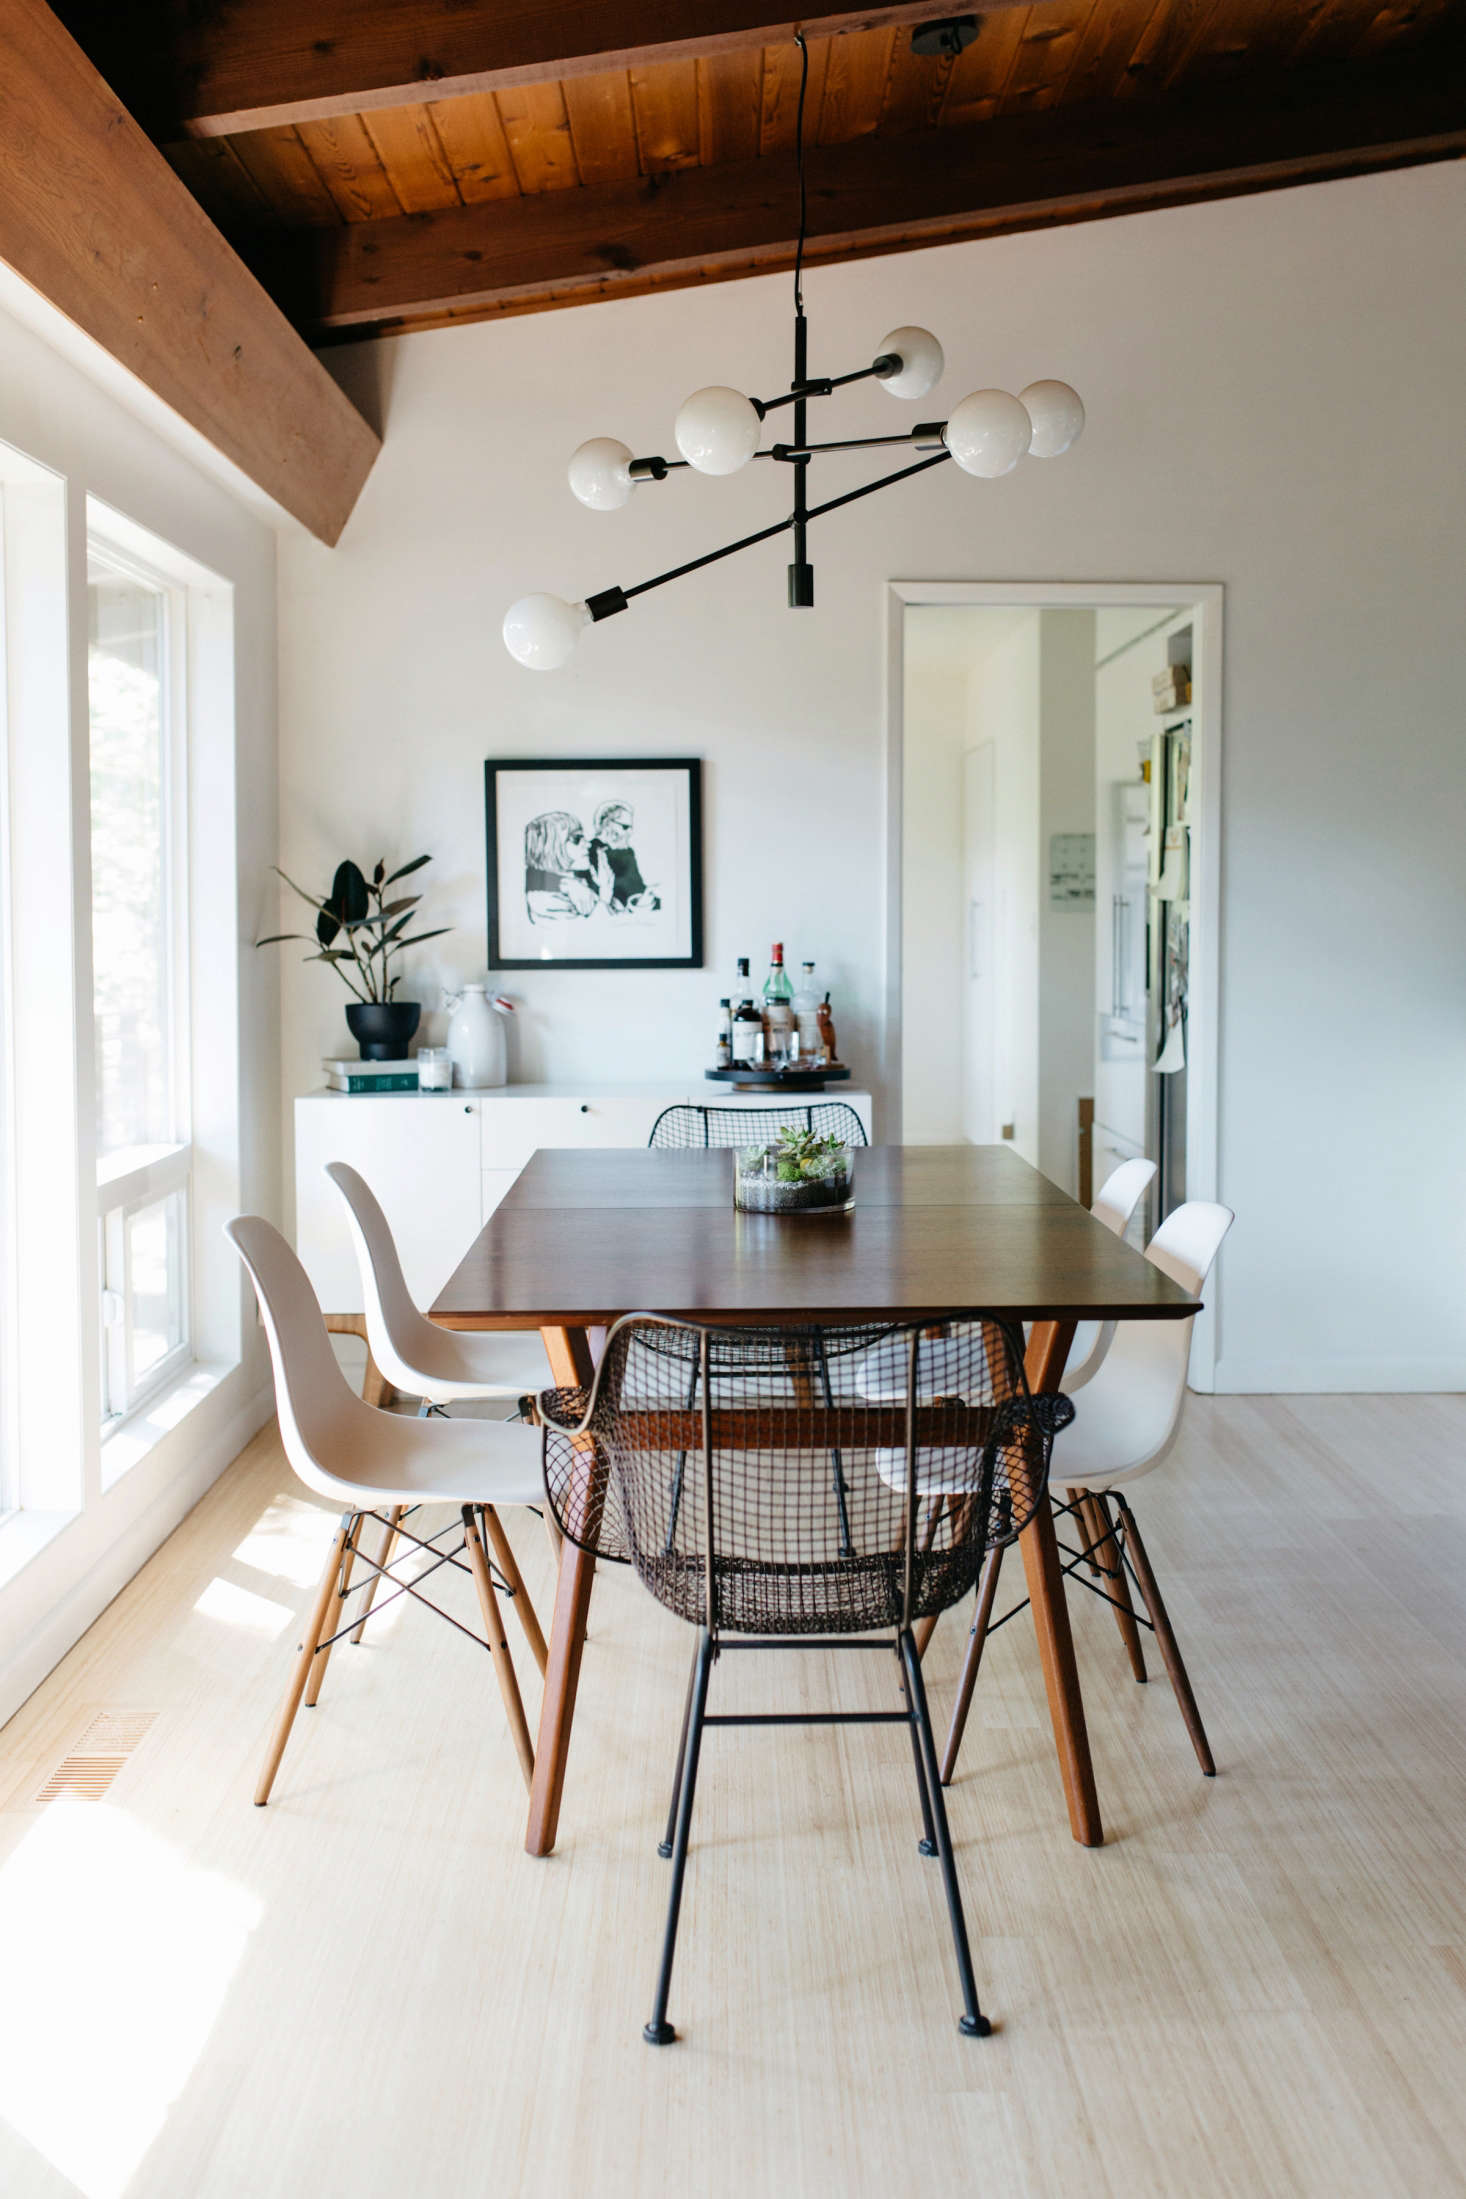 A Mid-Century Expandable Dining Table from West Elm is flanked by four Eames Molded Plastic Dowel-Leg Side Chairs.Above the table hangs aMobile Chandelier from West Elm.